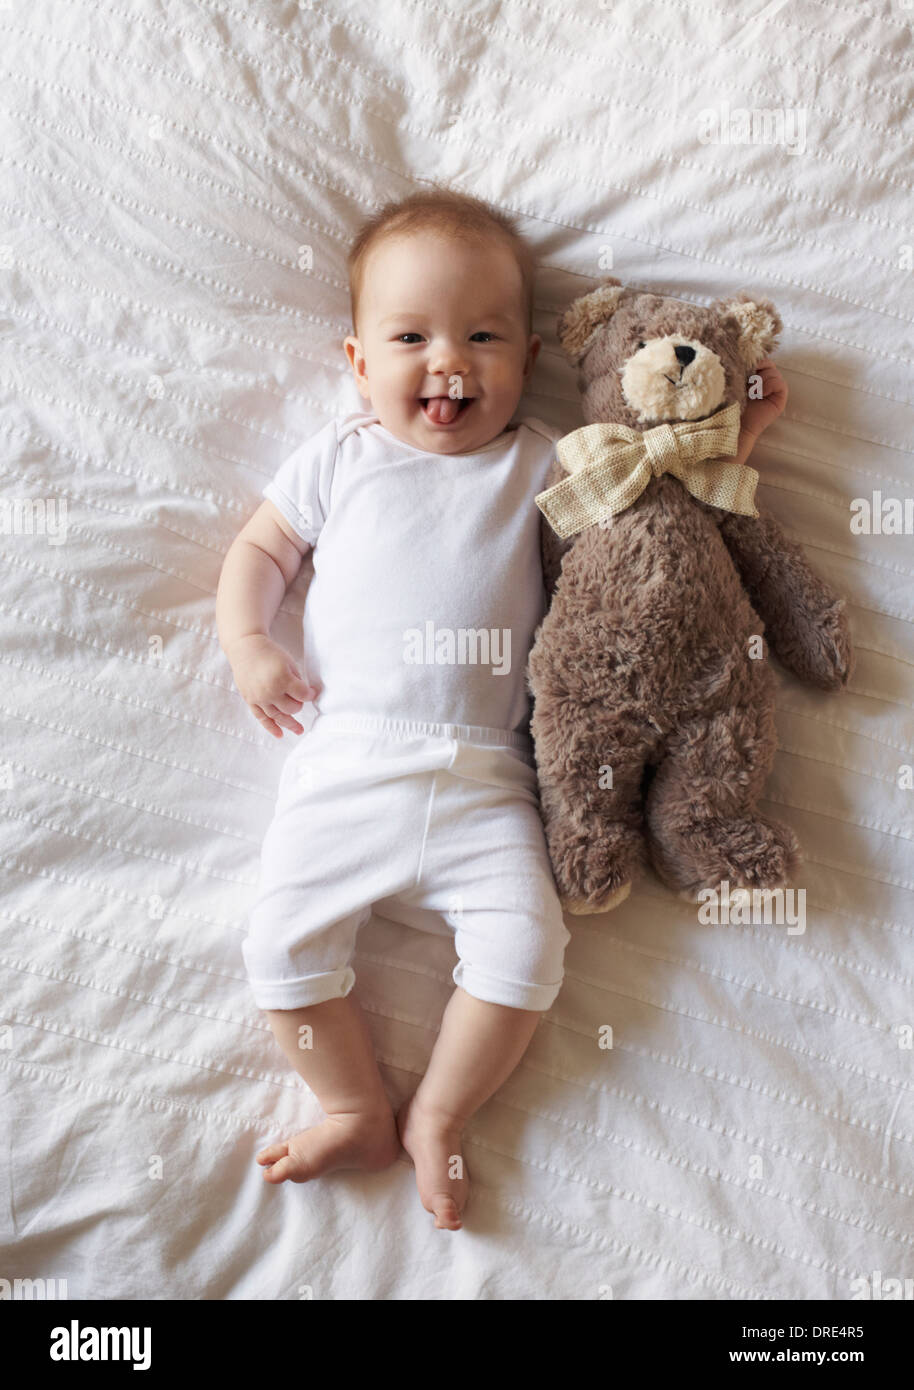 Baby laying on blanket with teddy bear - Stock Image